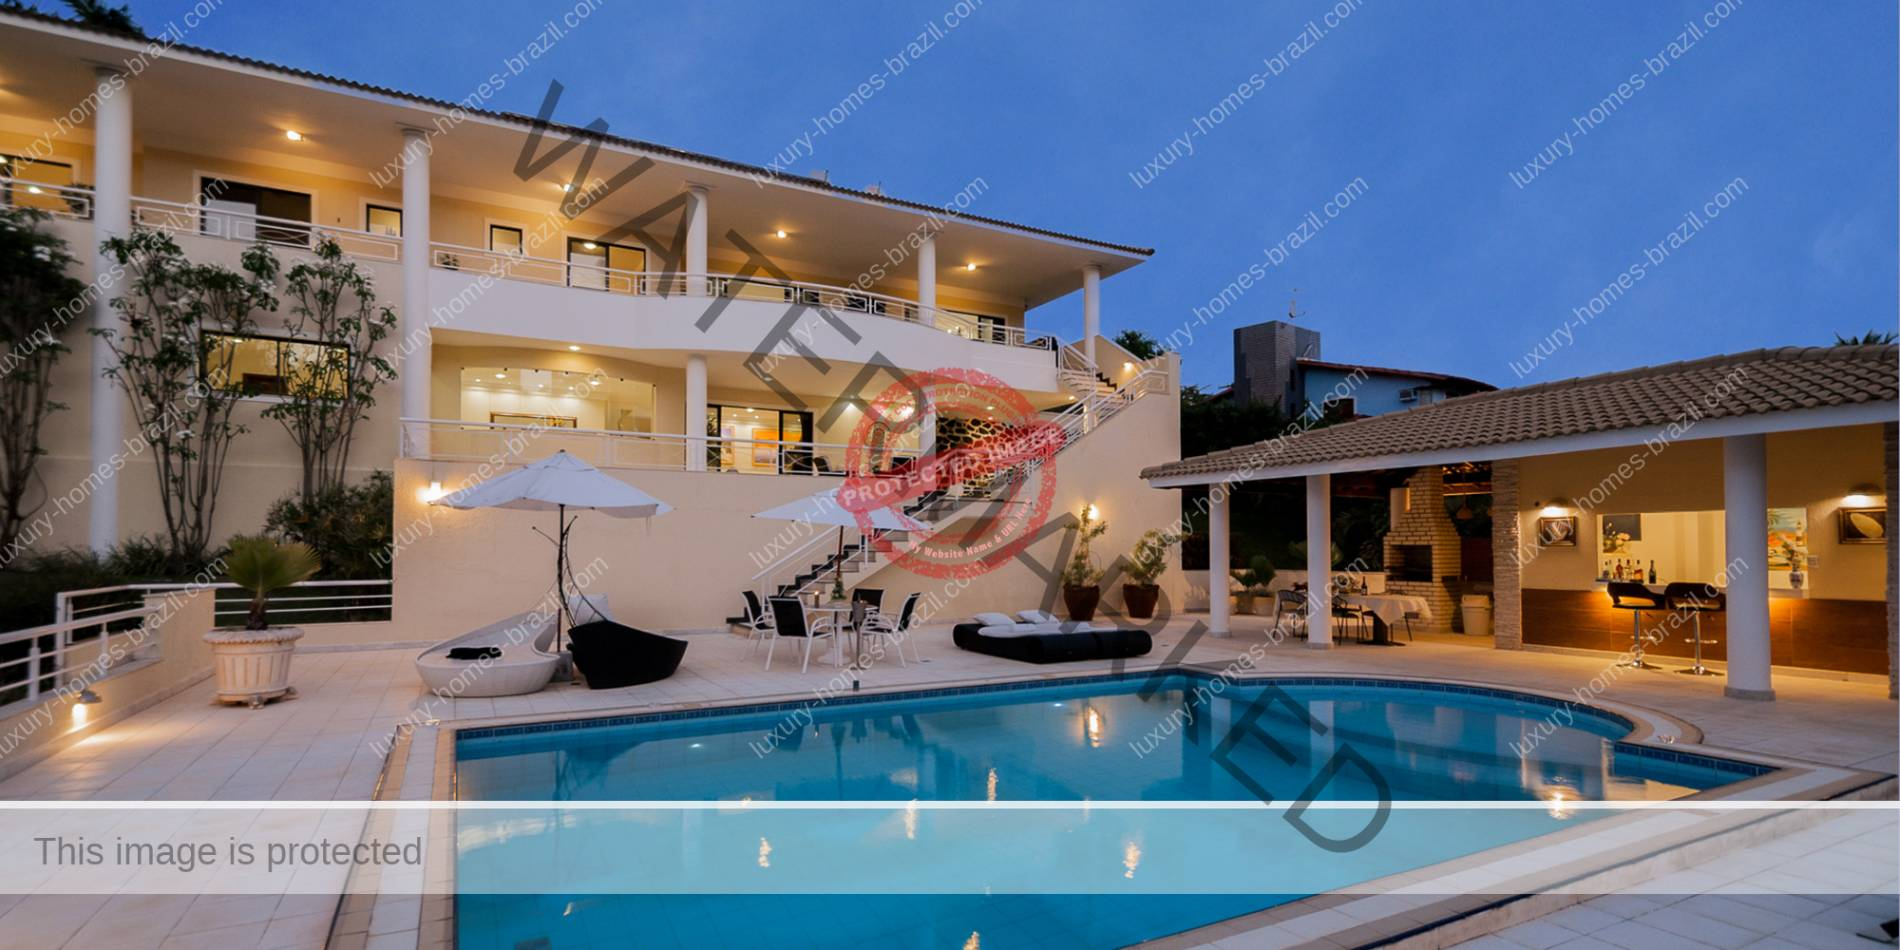 Buy A House In Brazil 28 Images Moving Walls Mixed